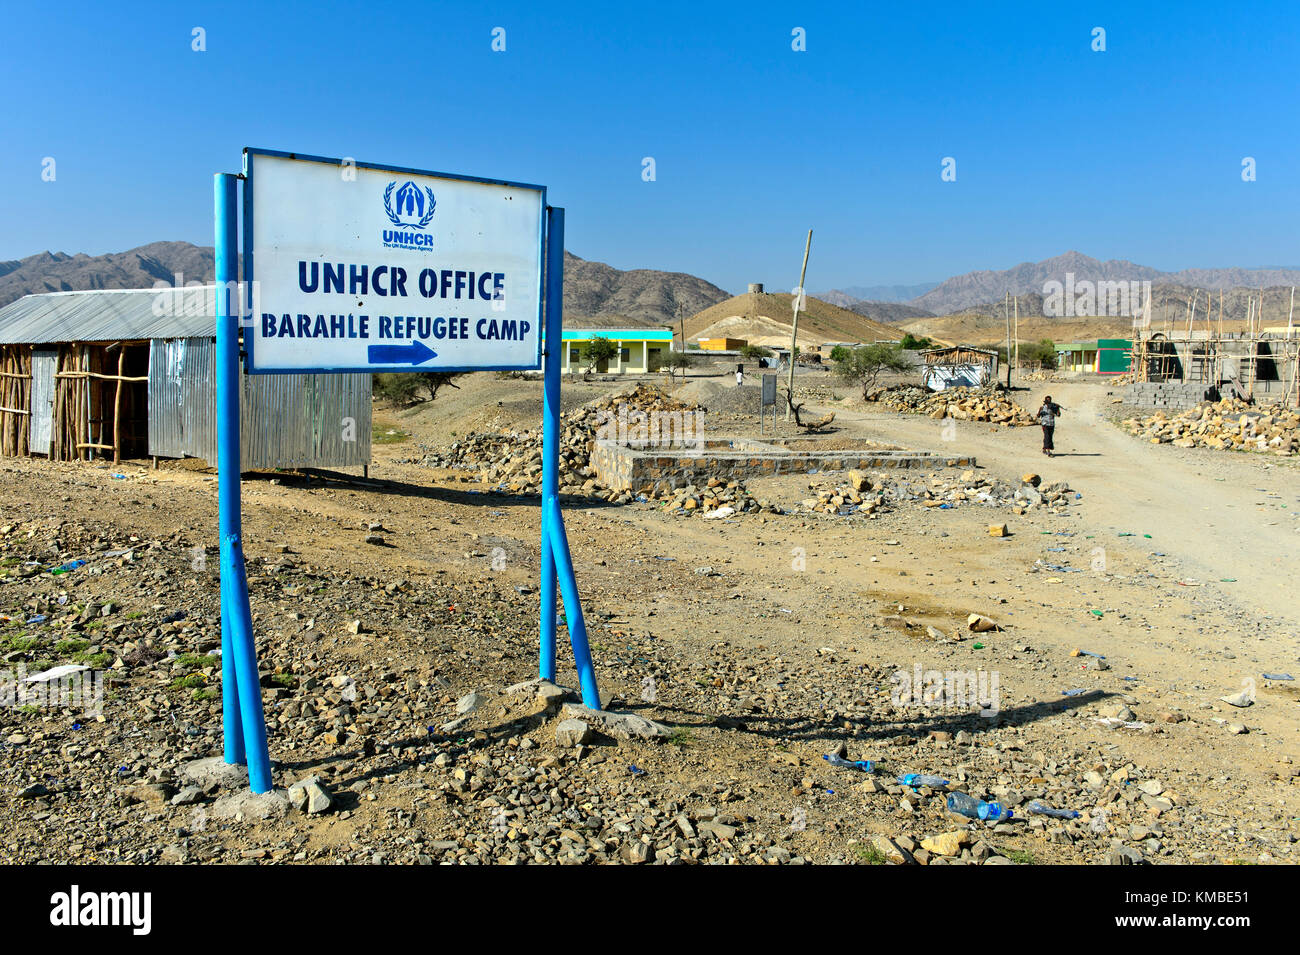 At the UNHCR Barahele Refugee Camp for refugees and asylum-seekers from Eritrea, Berhale, Afar Region, north-eastern - Stock Image